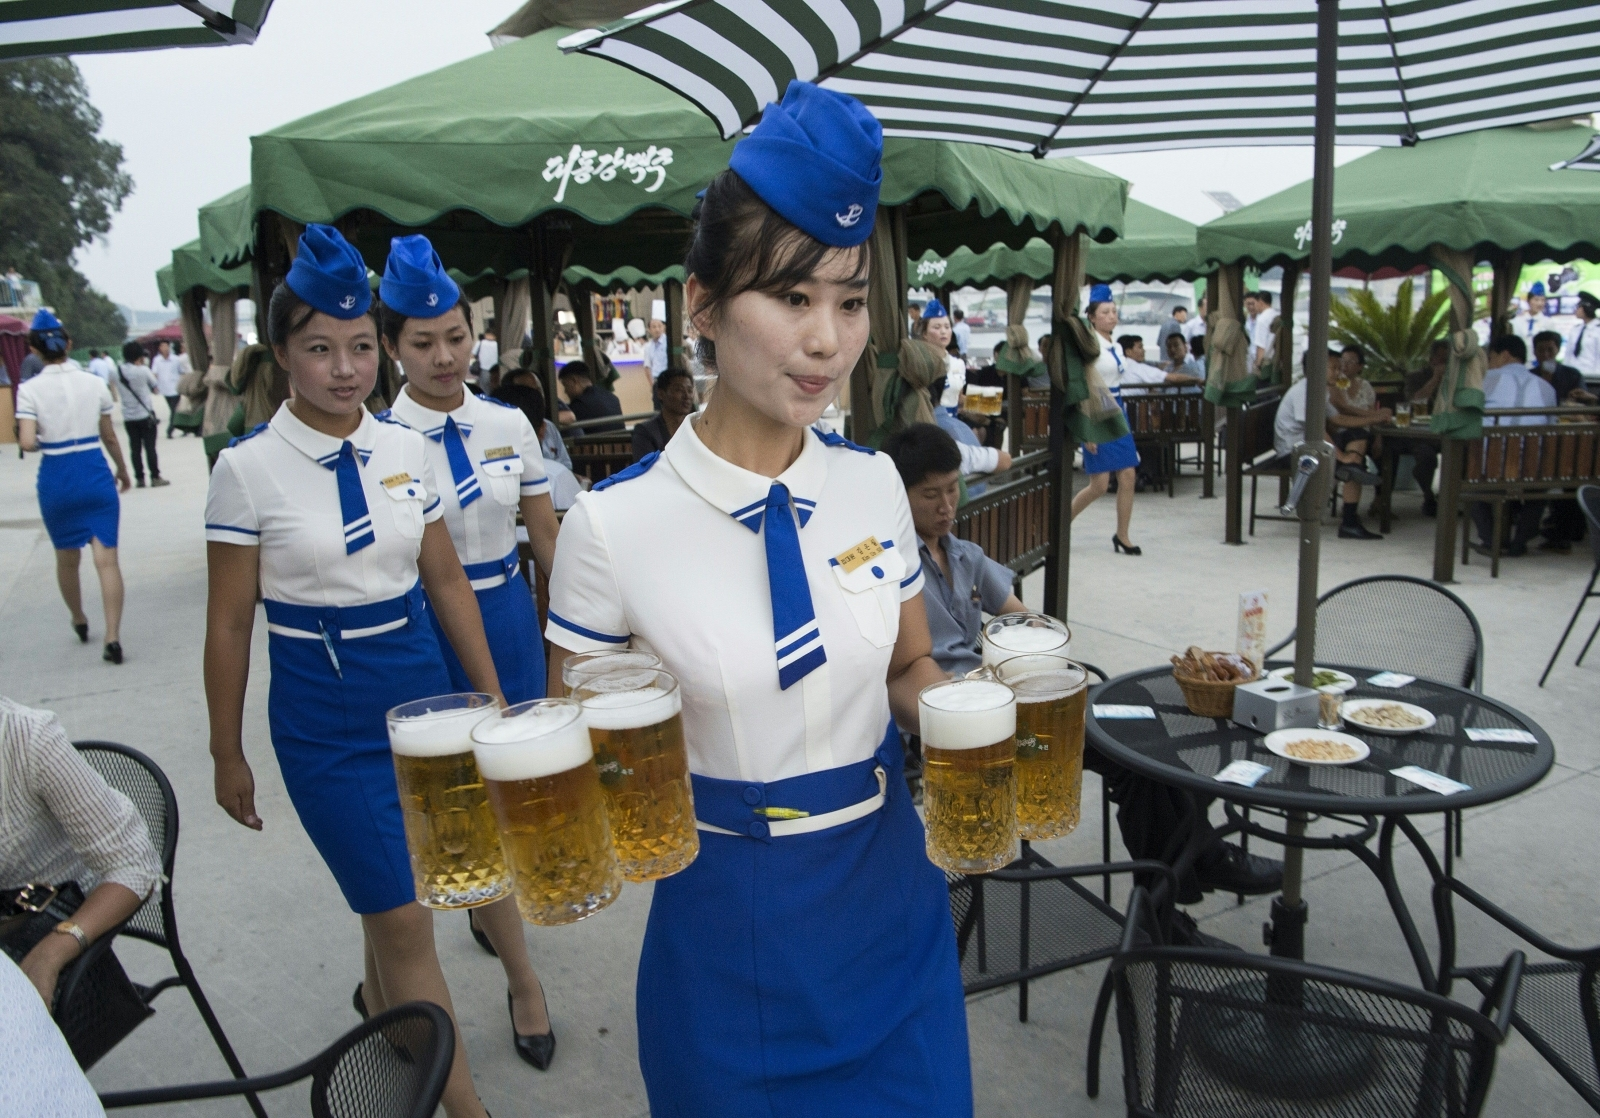 North Korea brews craft beer because Kim Jong-un hates 'tasteless' lager from the South